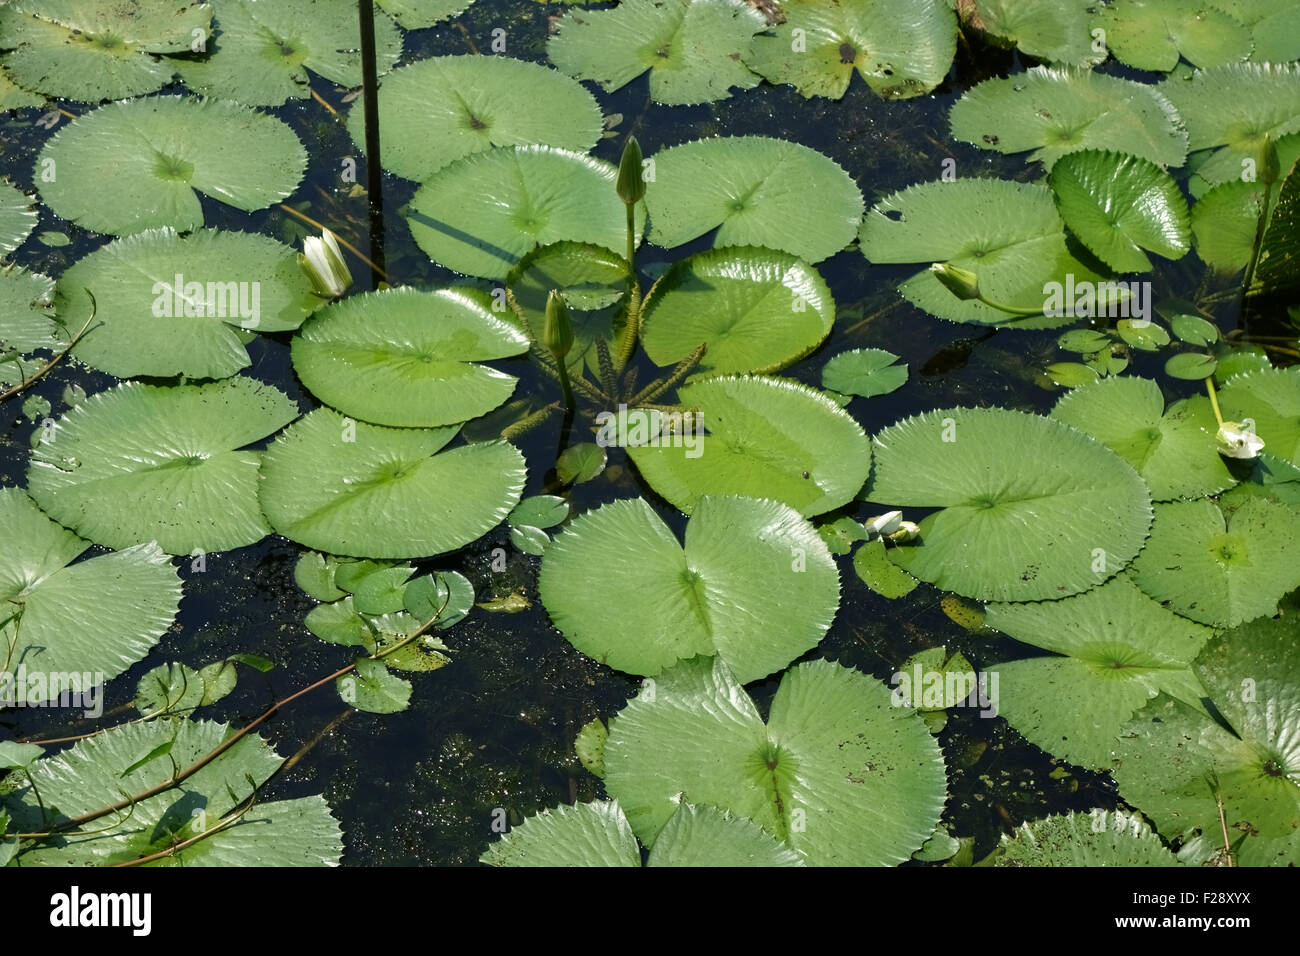 Water lilies, Nymphaea pubescens, lily pad leaves  of plants coming into flower on the surface of a lake on Koh Stock Photo